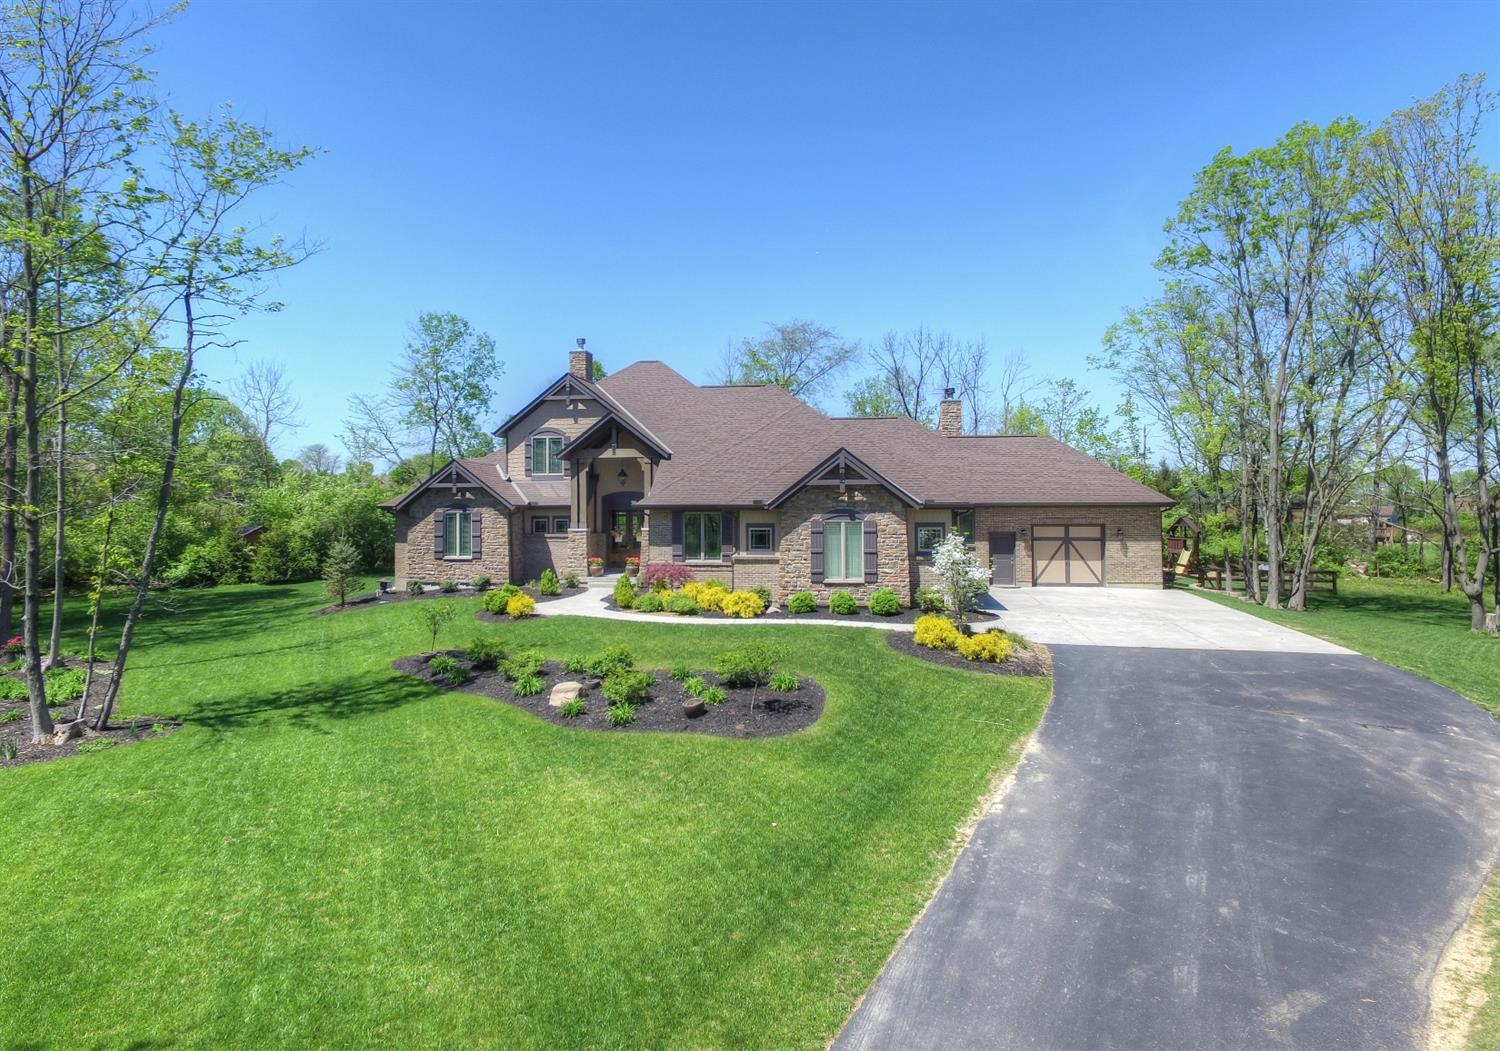 4891 Cox Smith Road, Mason, OH 45040